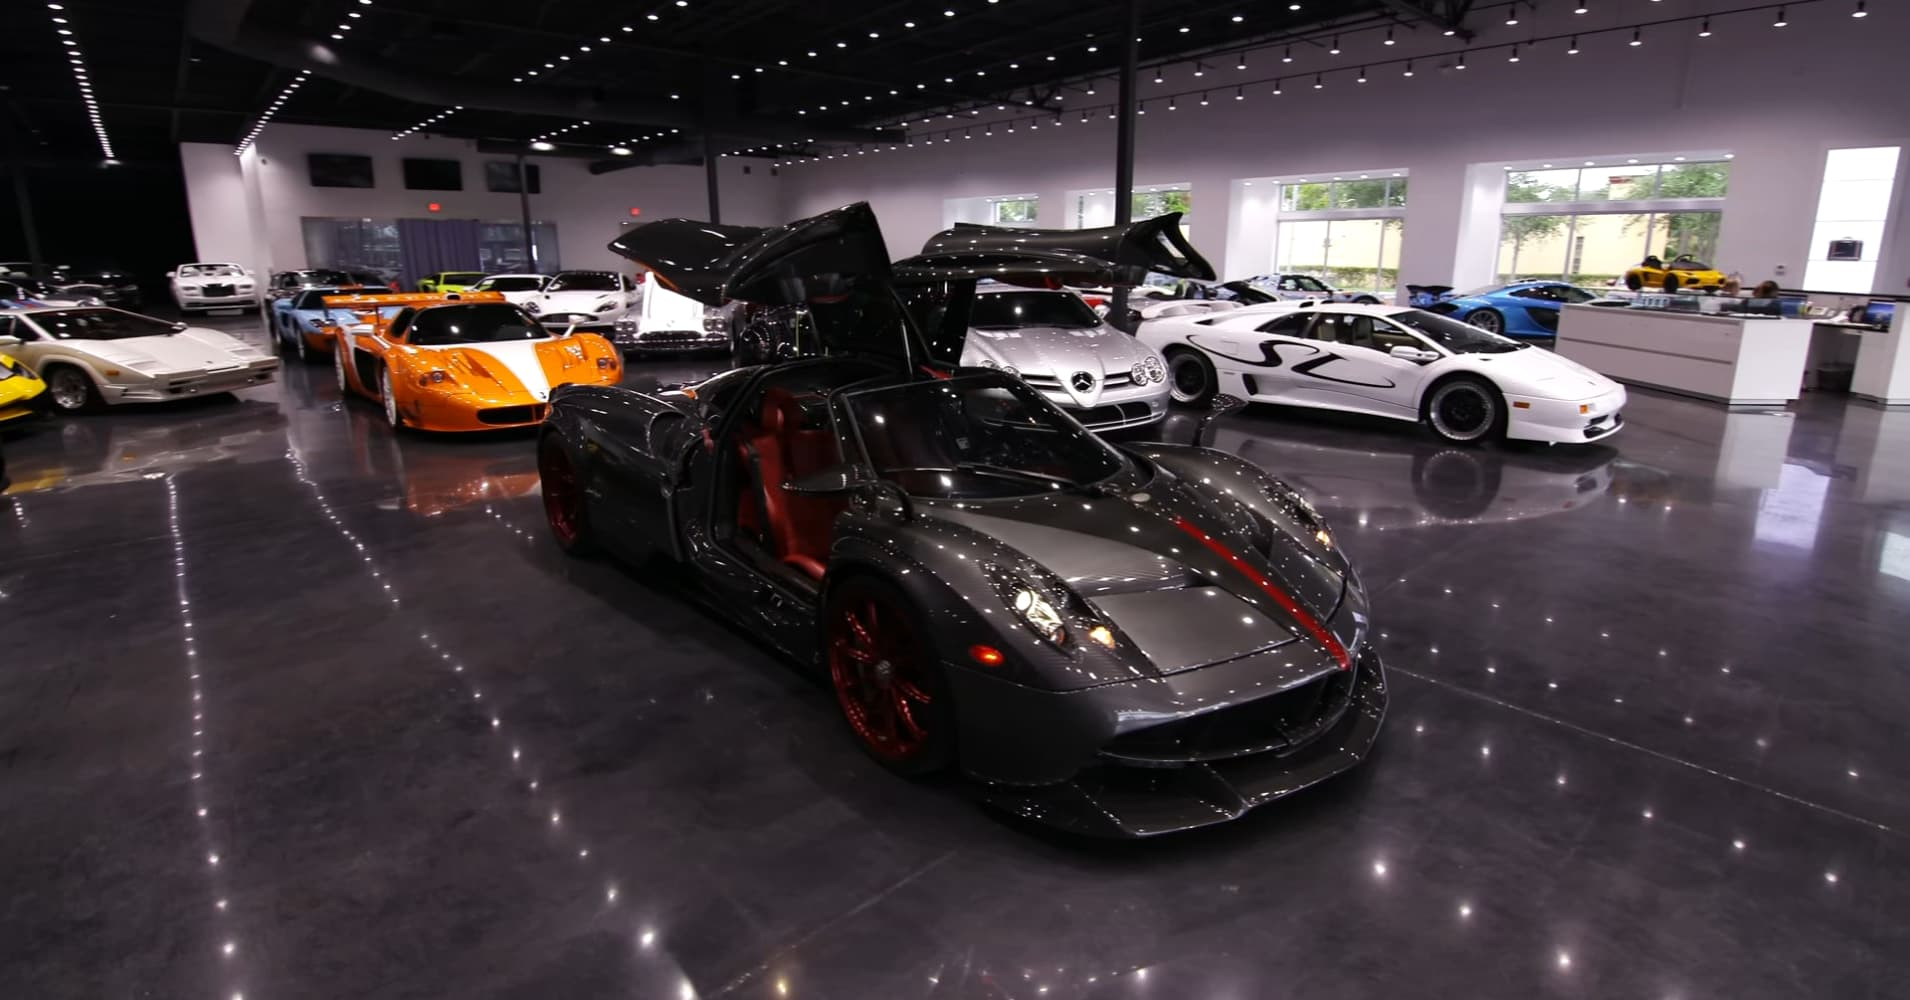 Prestige Imports: How much it costs to lease a Pagani Huayra Roadster  | CNBC